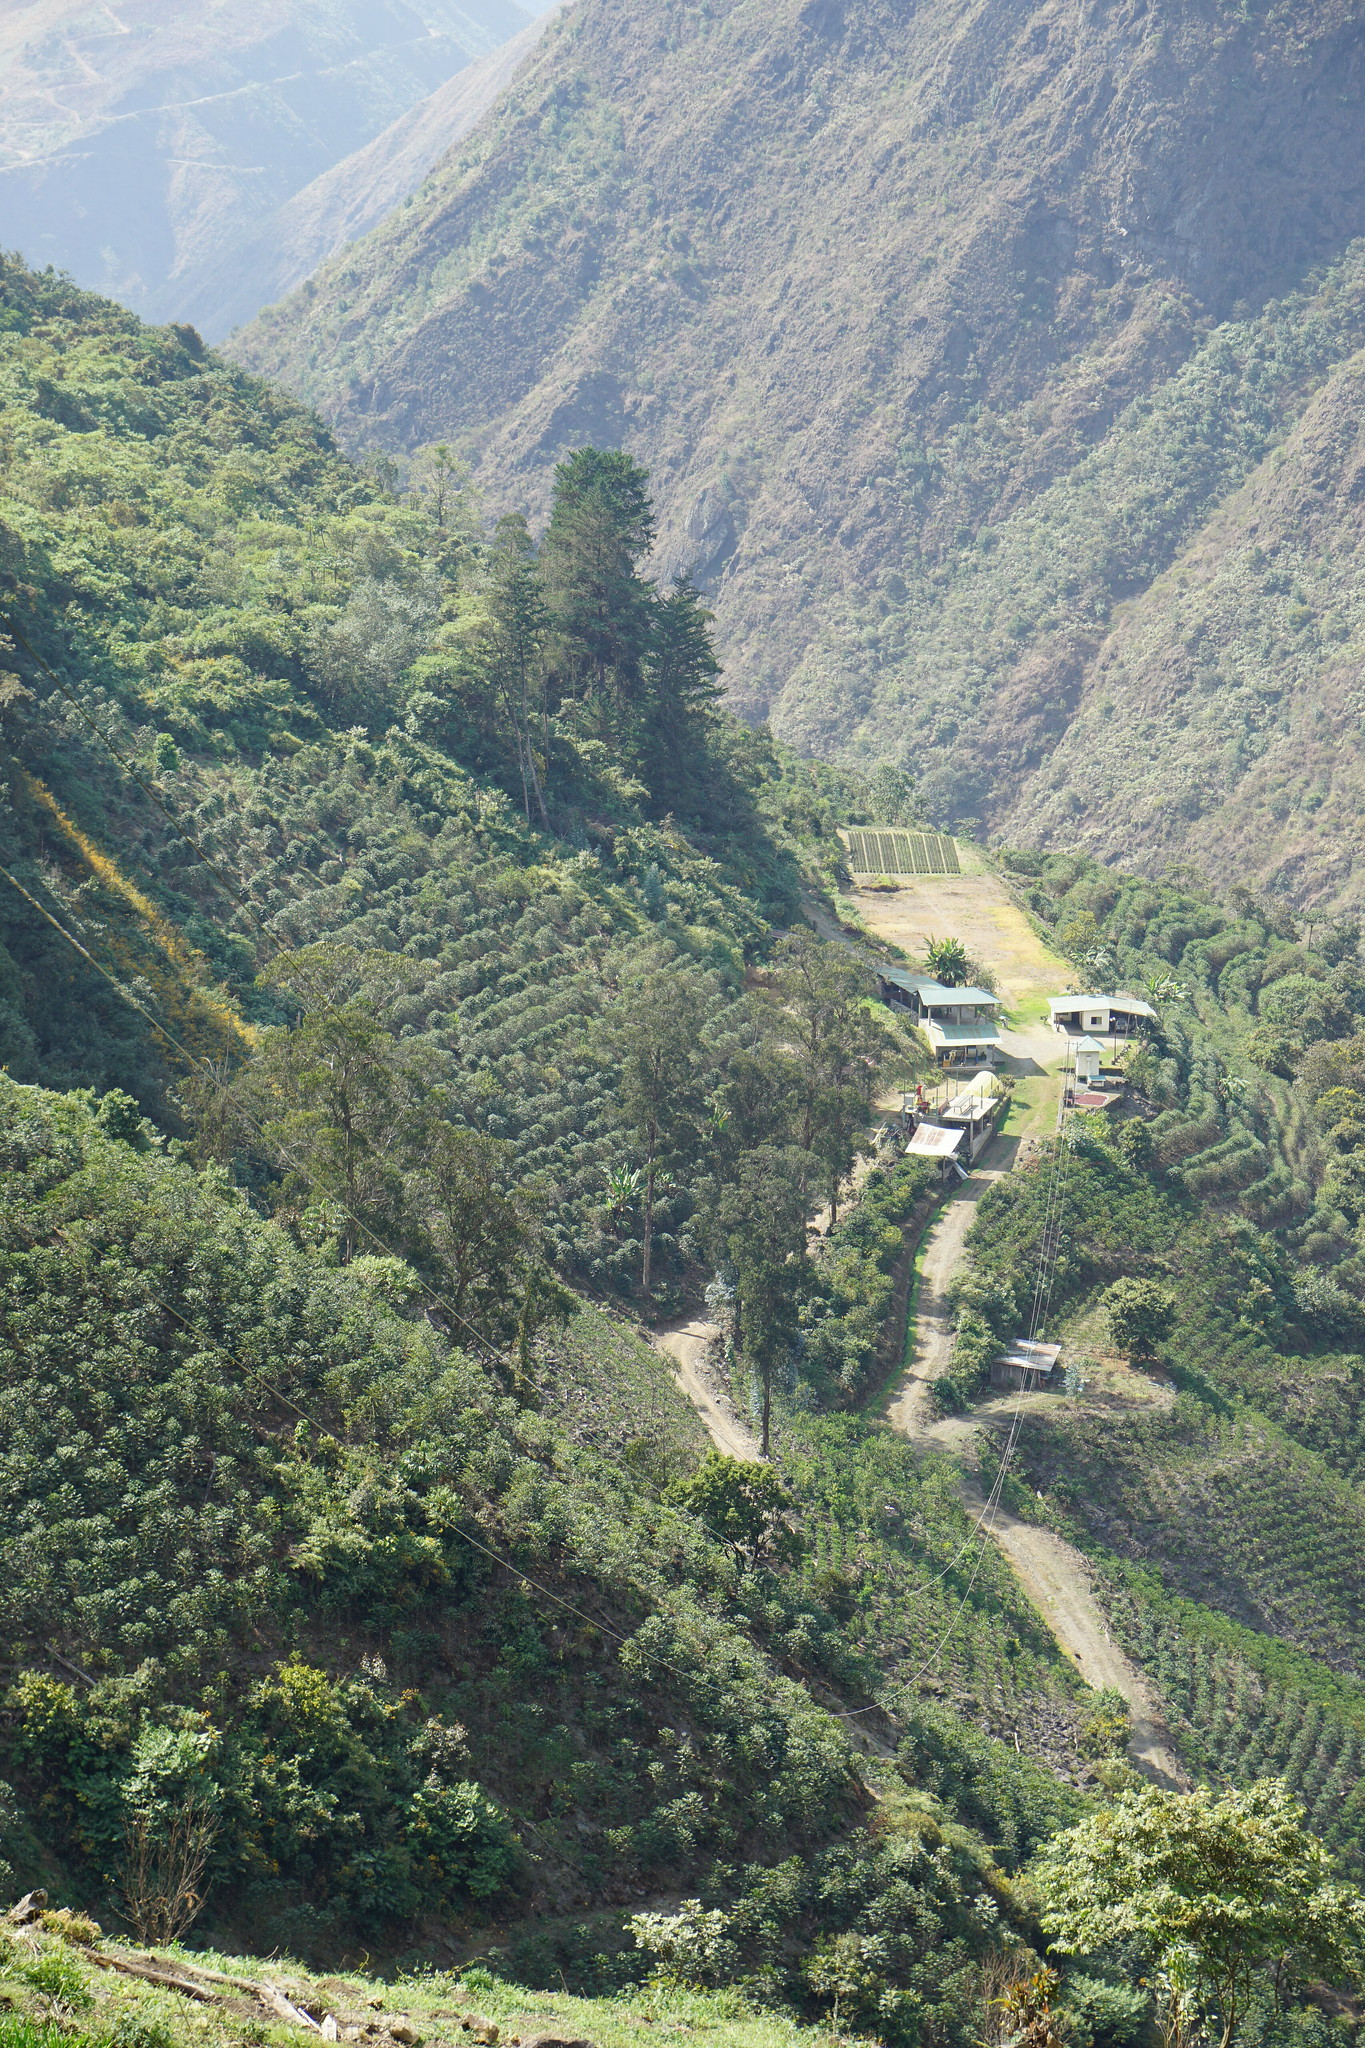 Takesi farm is spectacularly situated on steep slopes with nice lines of coffee trees.